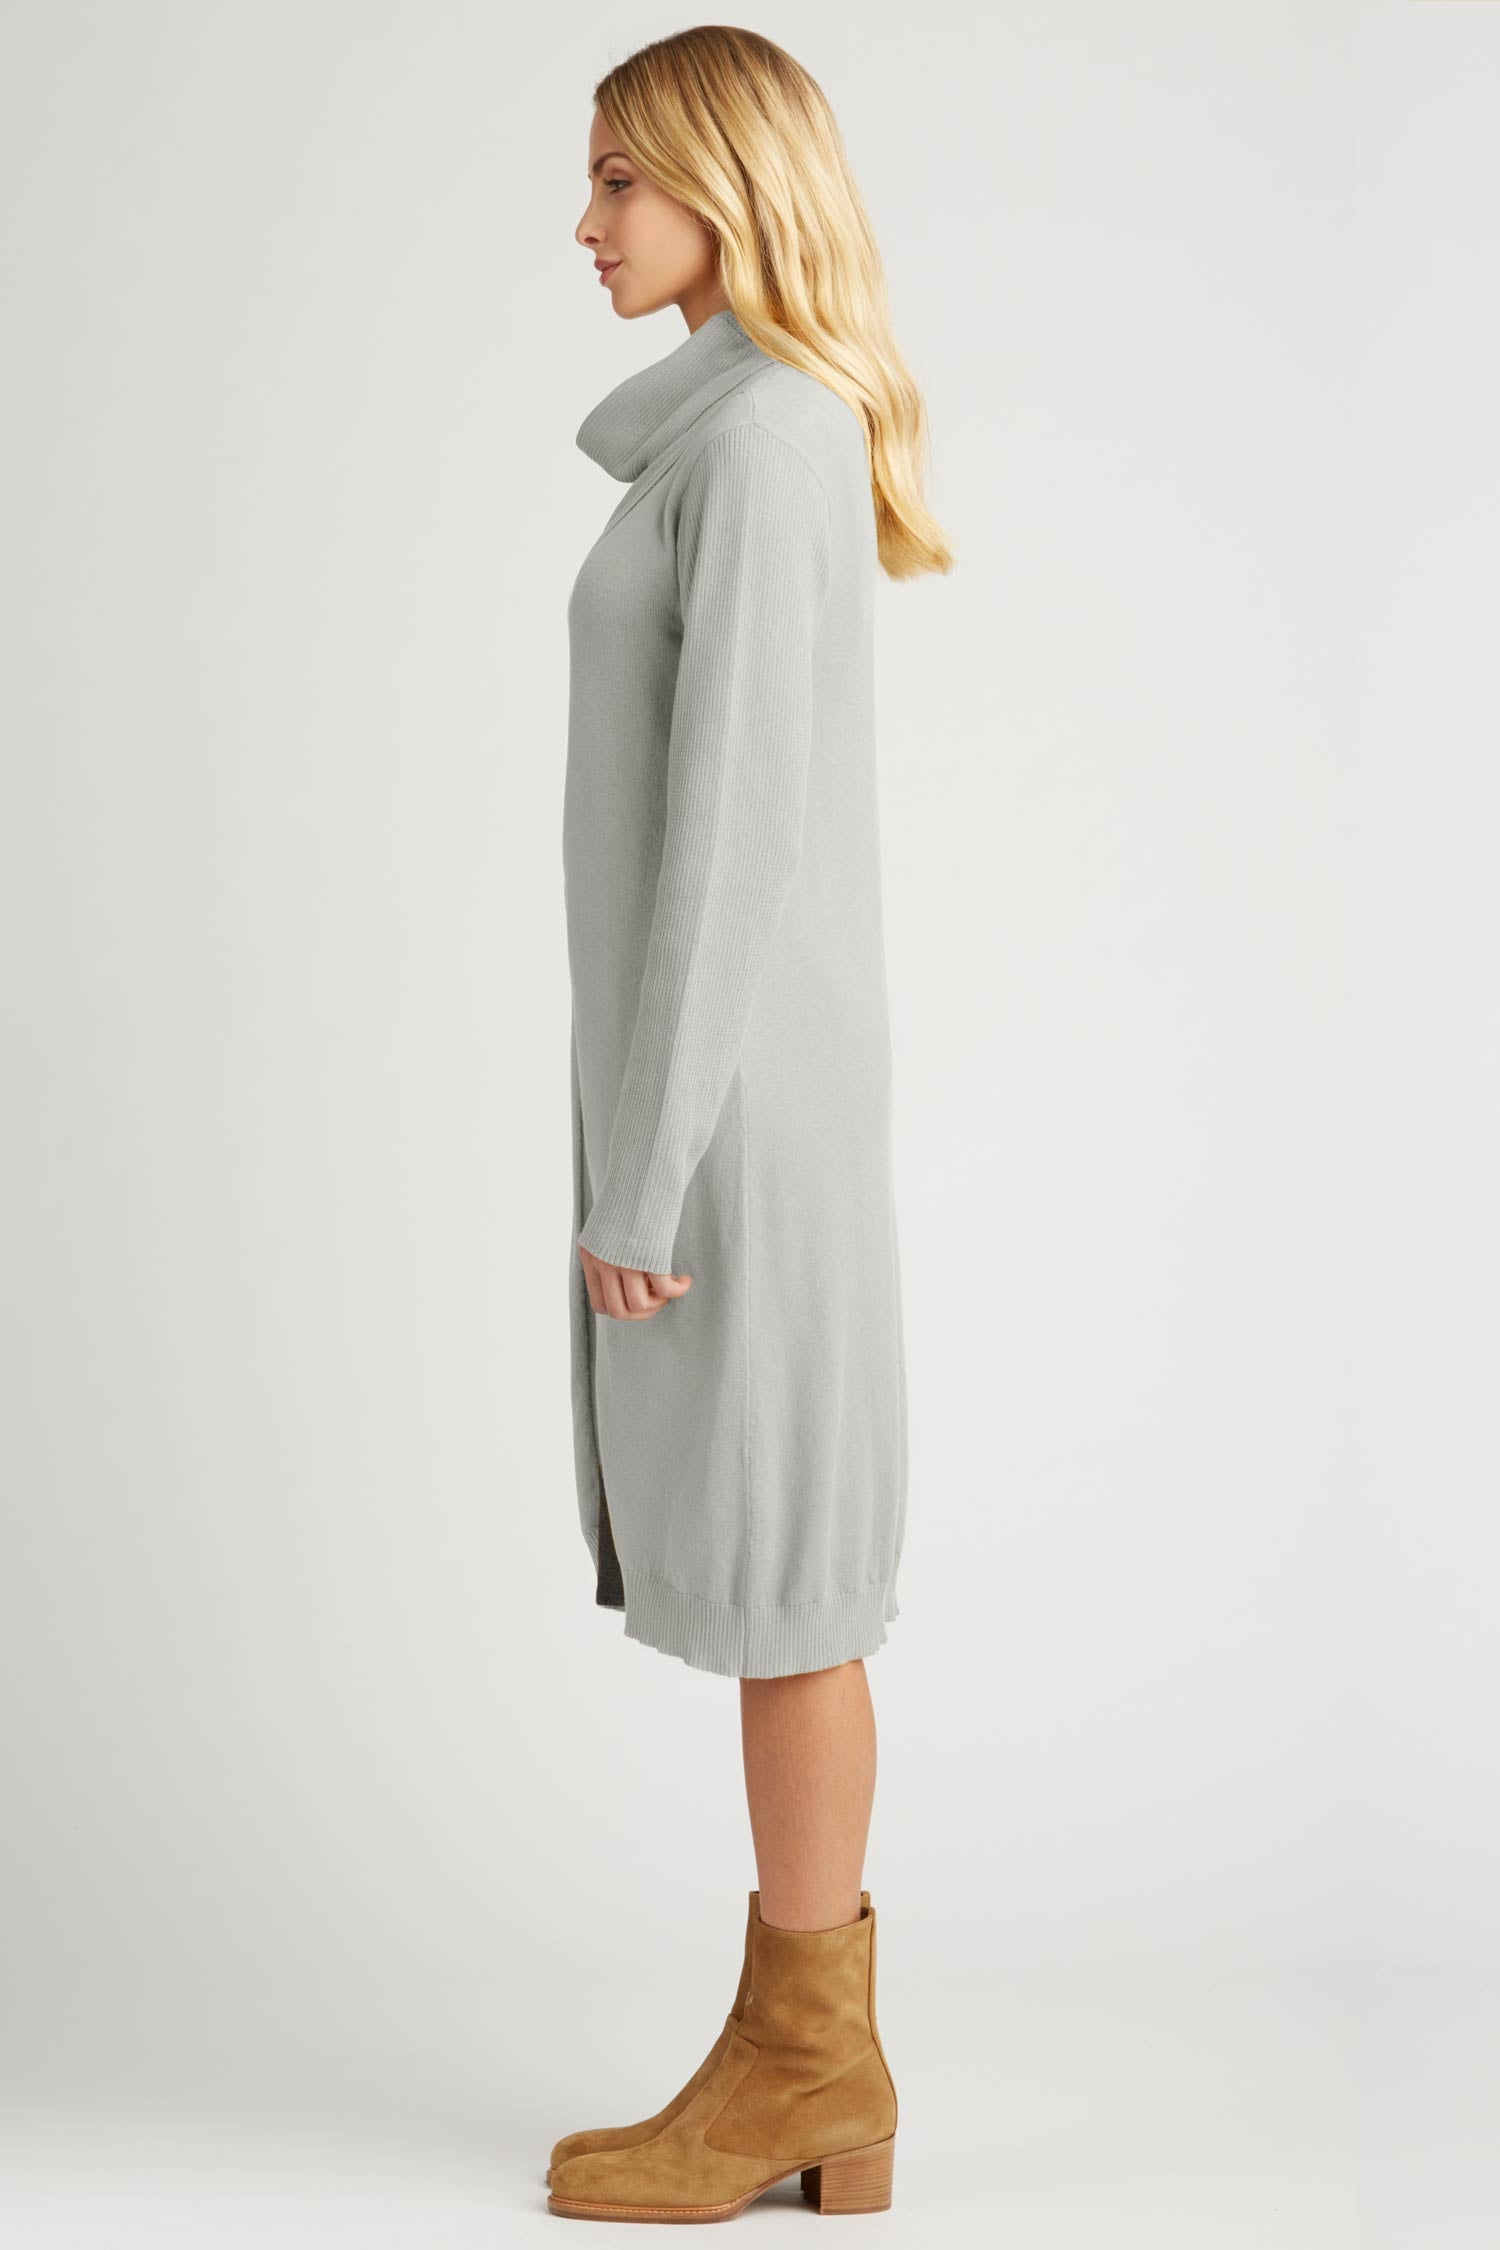 Womens Cross Front Cowl Tunic Cardigan | Gray | Organic Cotton Clothing